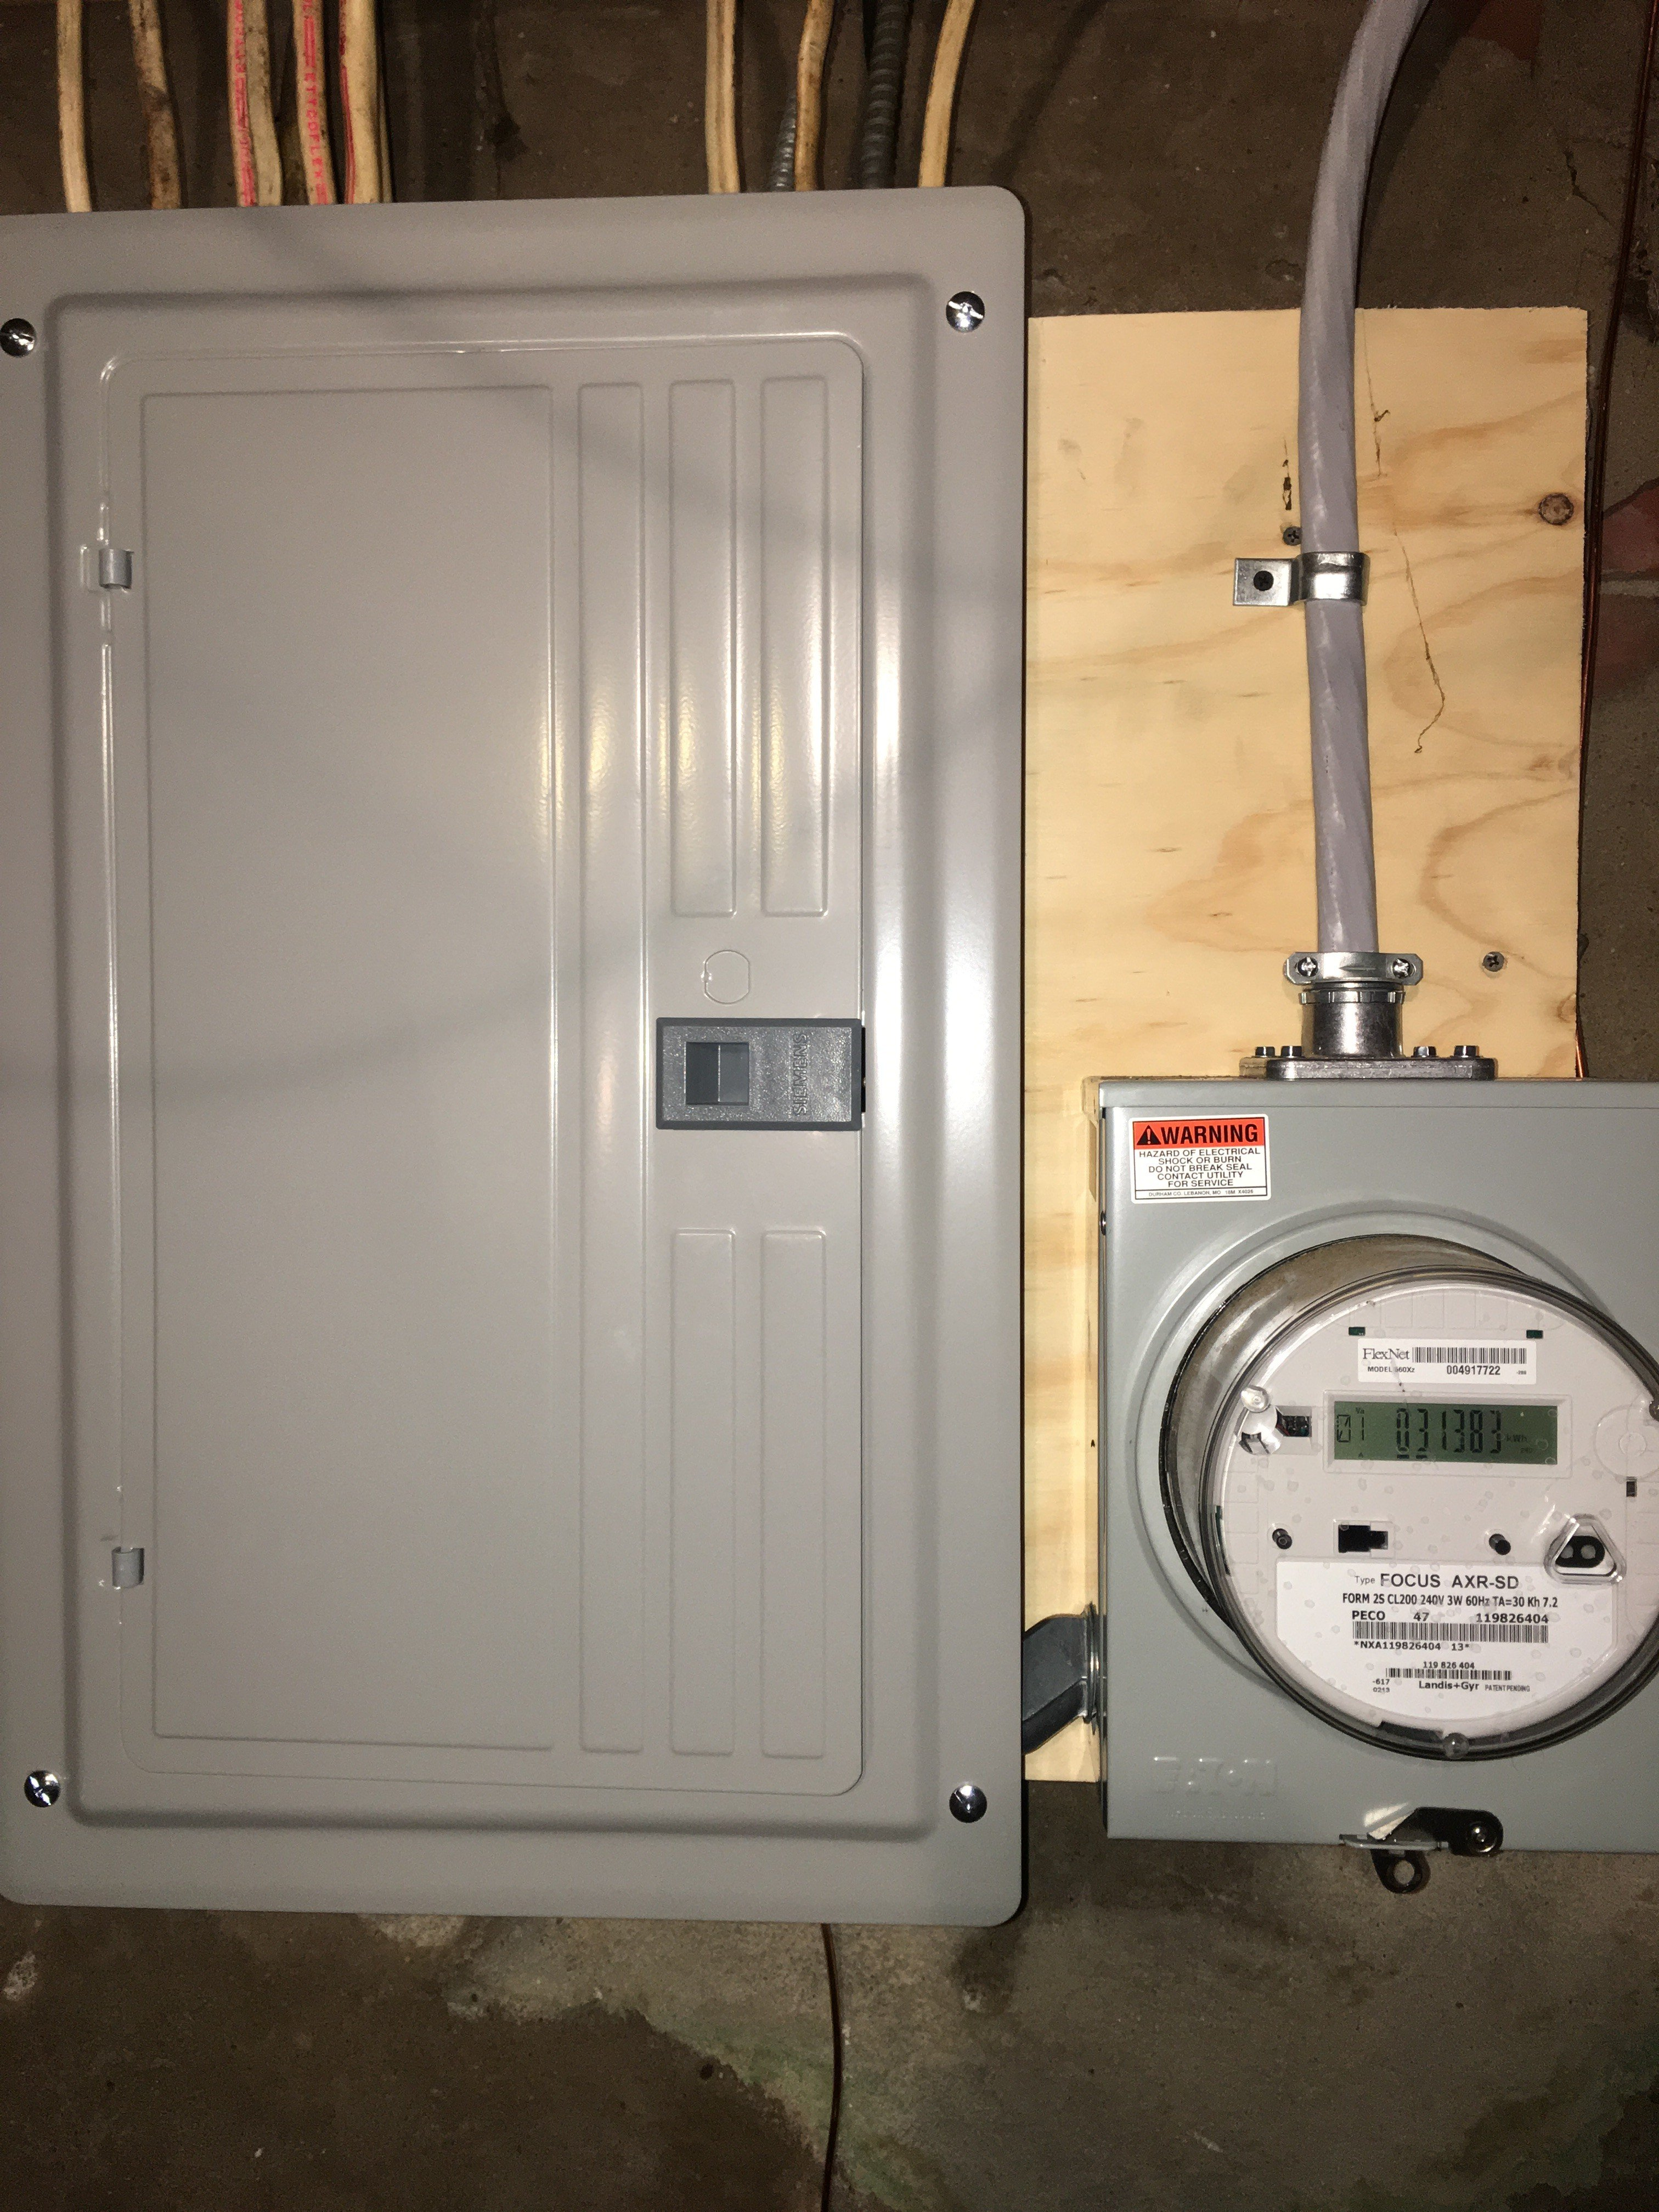 Electrician Philadelphia Electrical Contractors How To Do Home Wiring We Were Recently In Port Richmond Due Blinking Lights And Comcast Disconnecting Service Grounding Issues Upon Arrival Met By Over 100